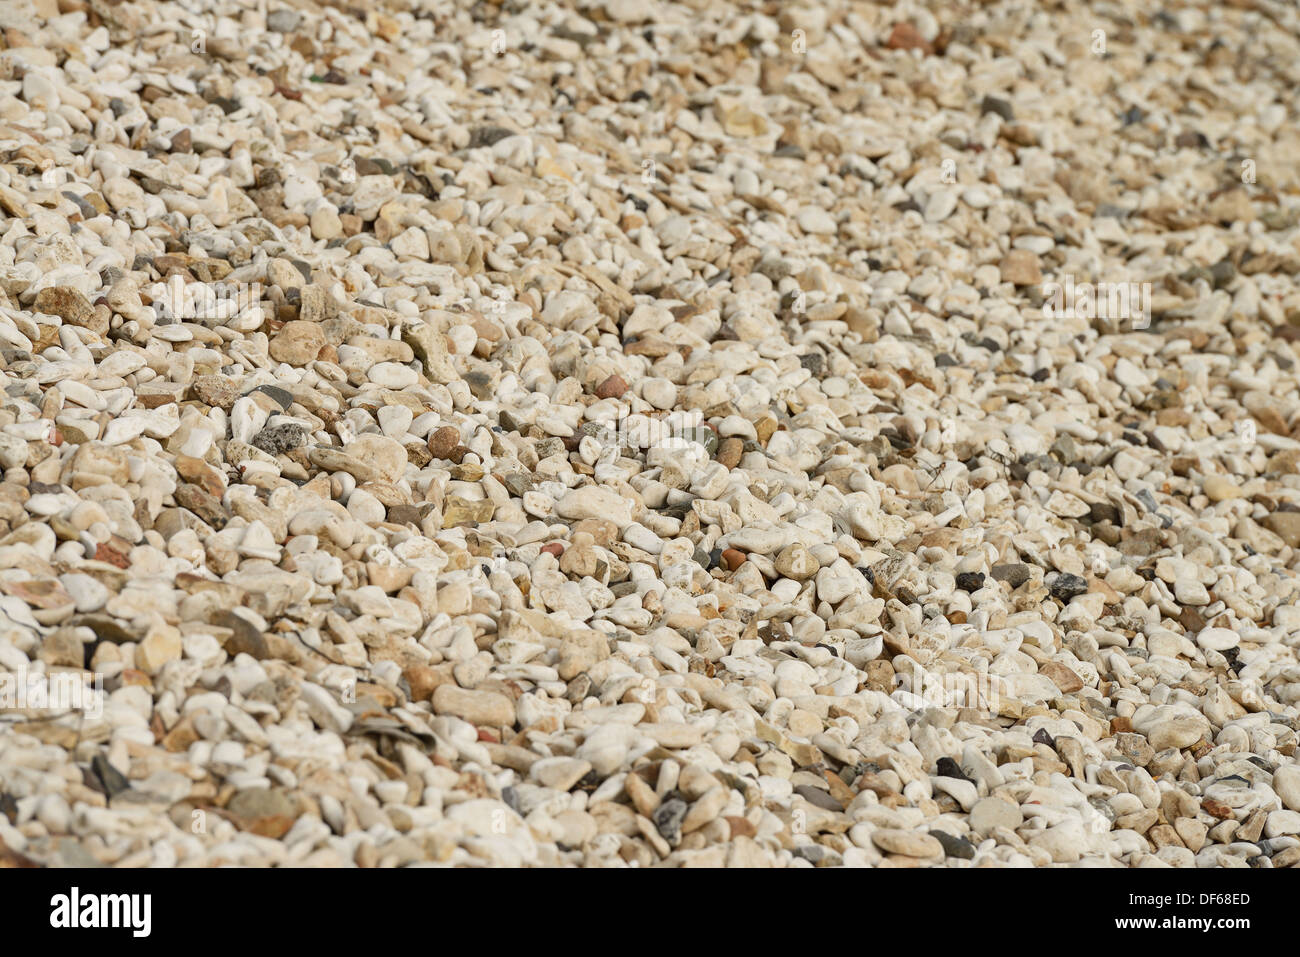 Beach pebbles abstract background pattern - Stock Image